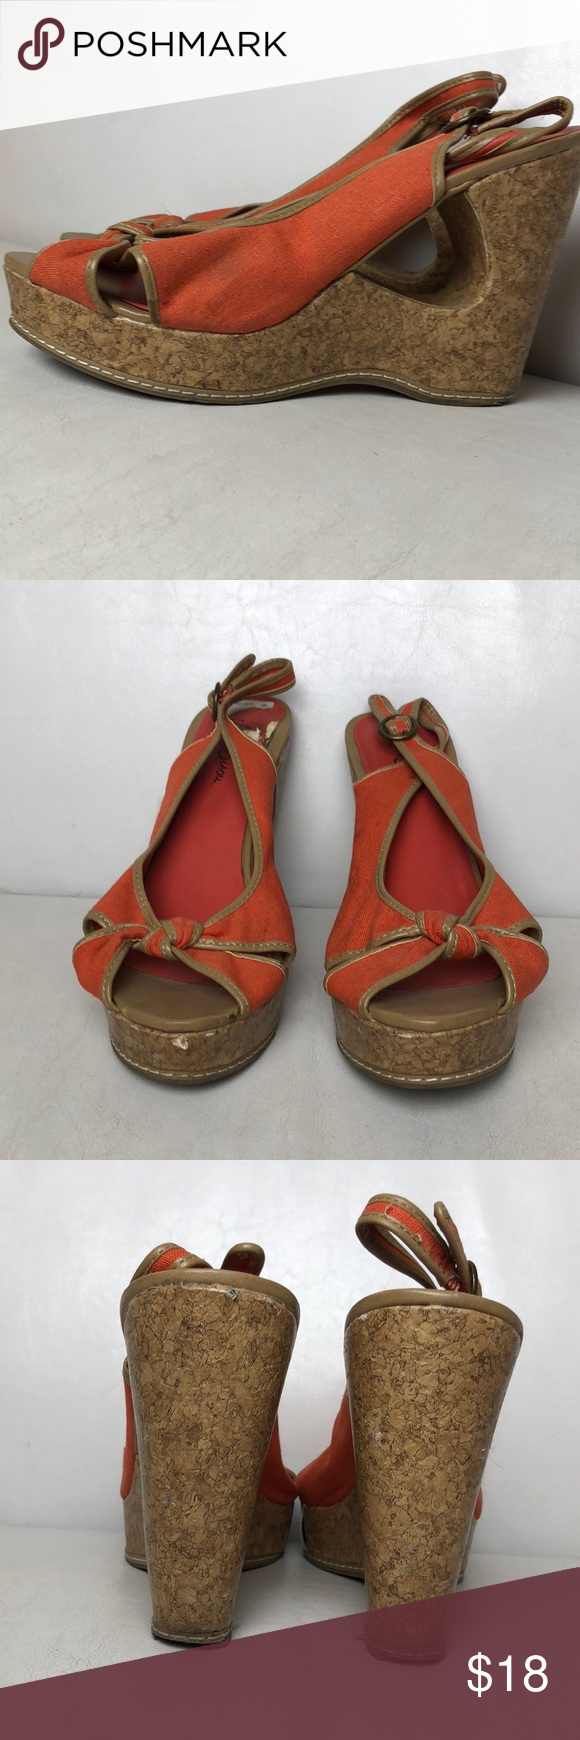 f77482db672d Miss Bisou Orange Cork Wedges EUC Super Cute Miss Bisou Orange Cork Wedges  Miss Bisou Shoes Wedges